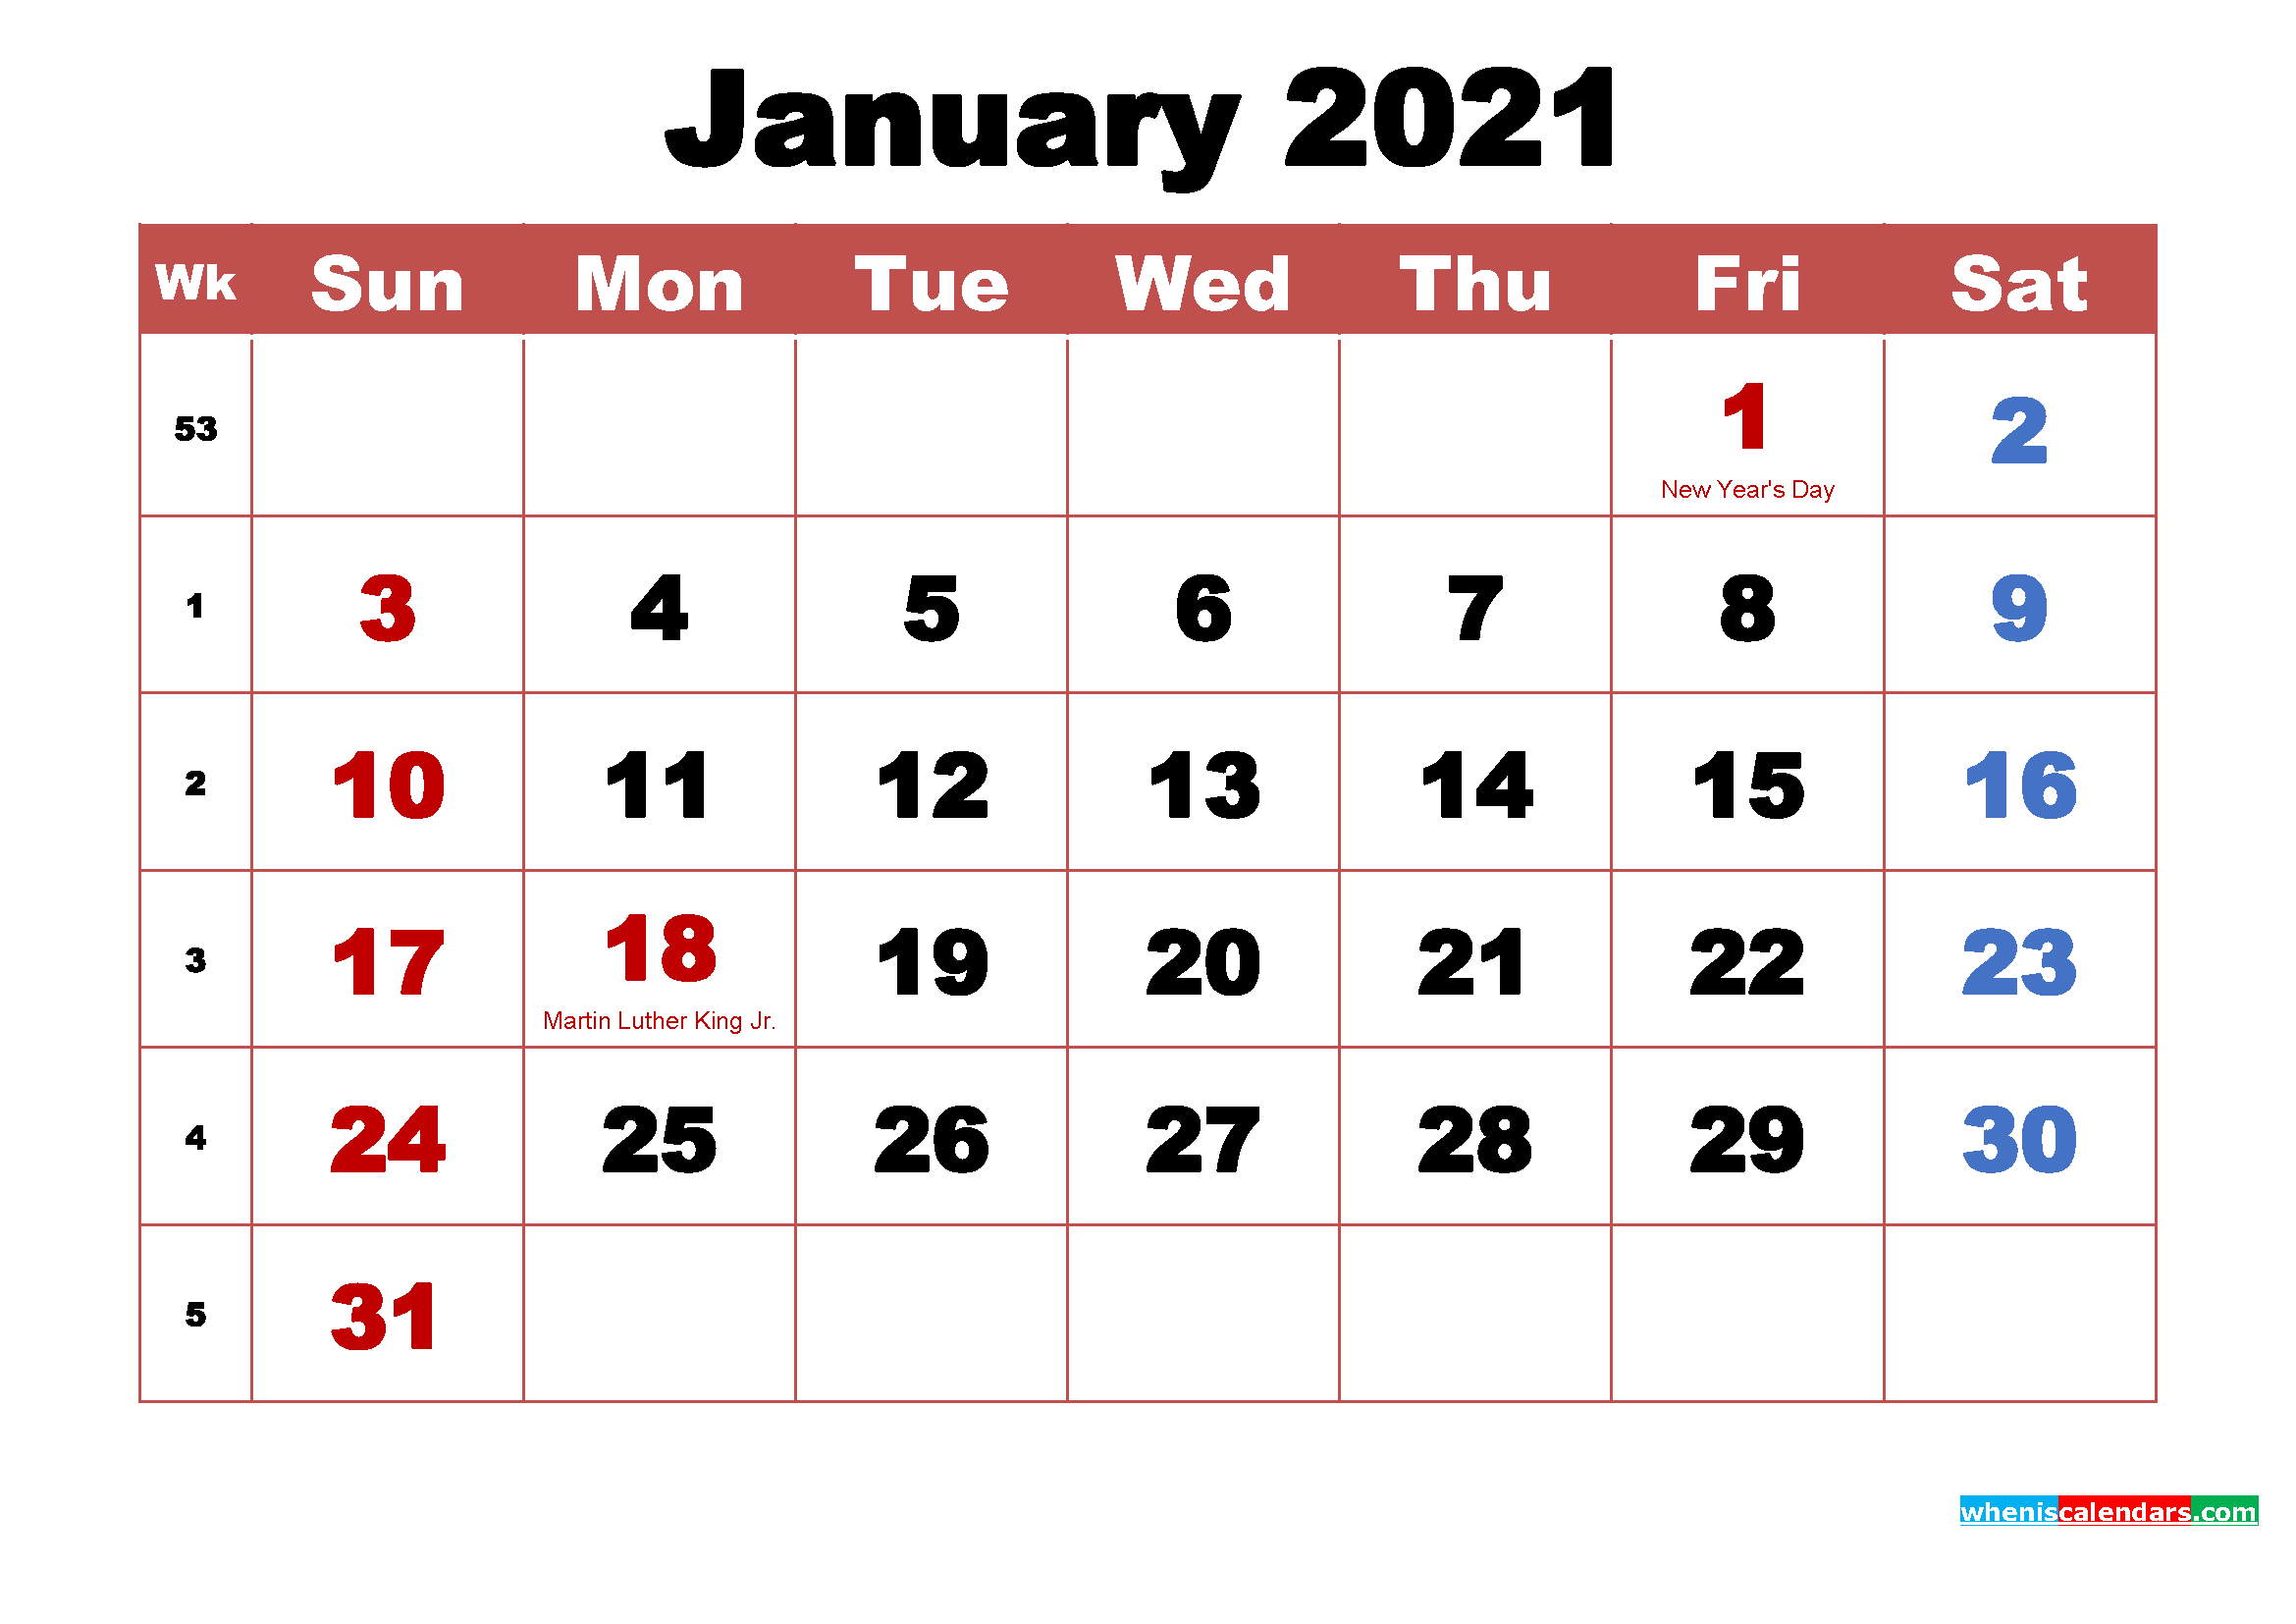 Calendar Of Jan 2021 January 2021 Calendar Wallpapers   Top Free January 2021 Calendar